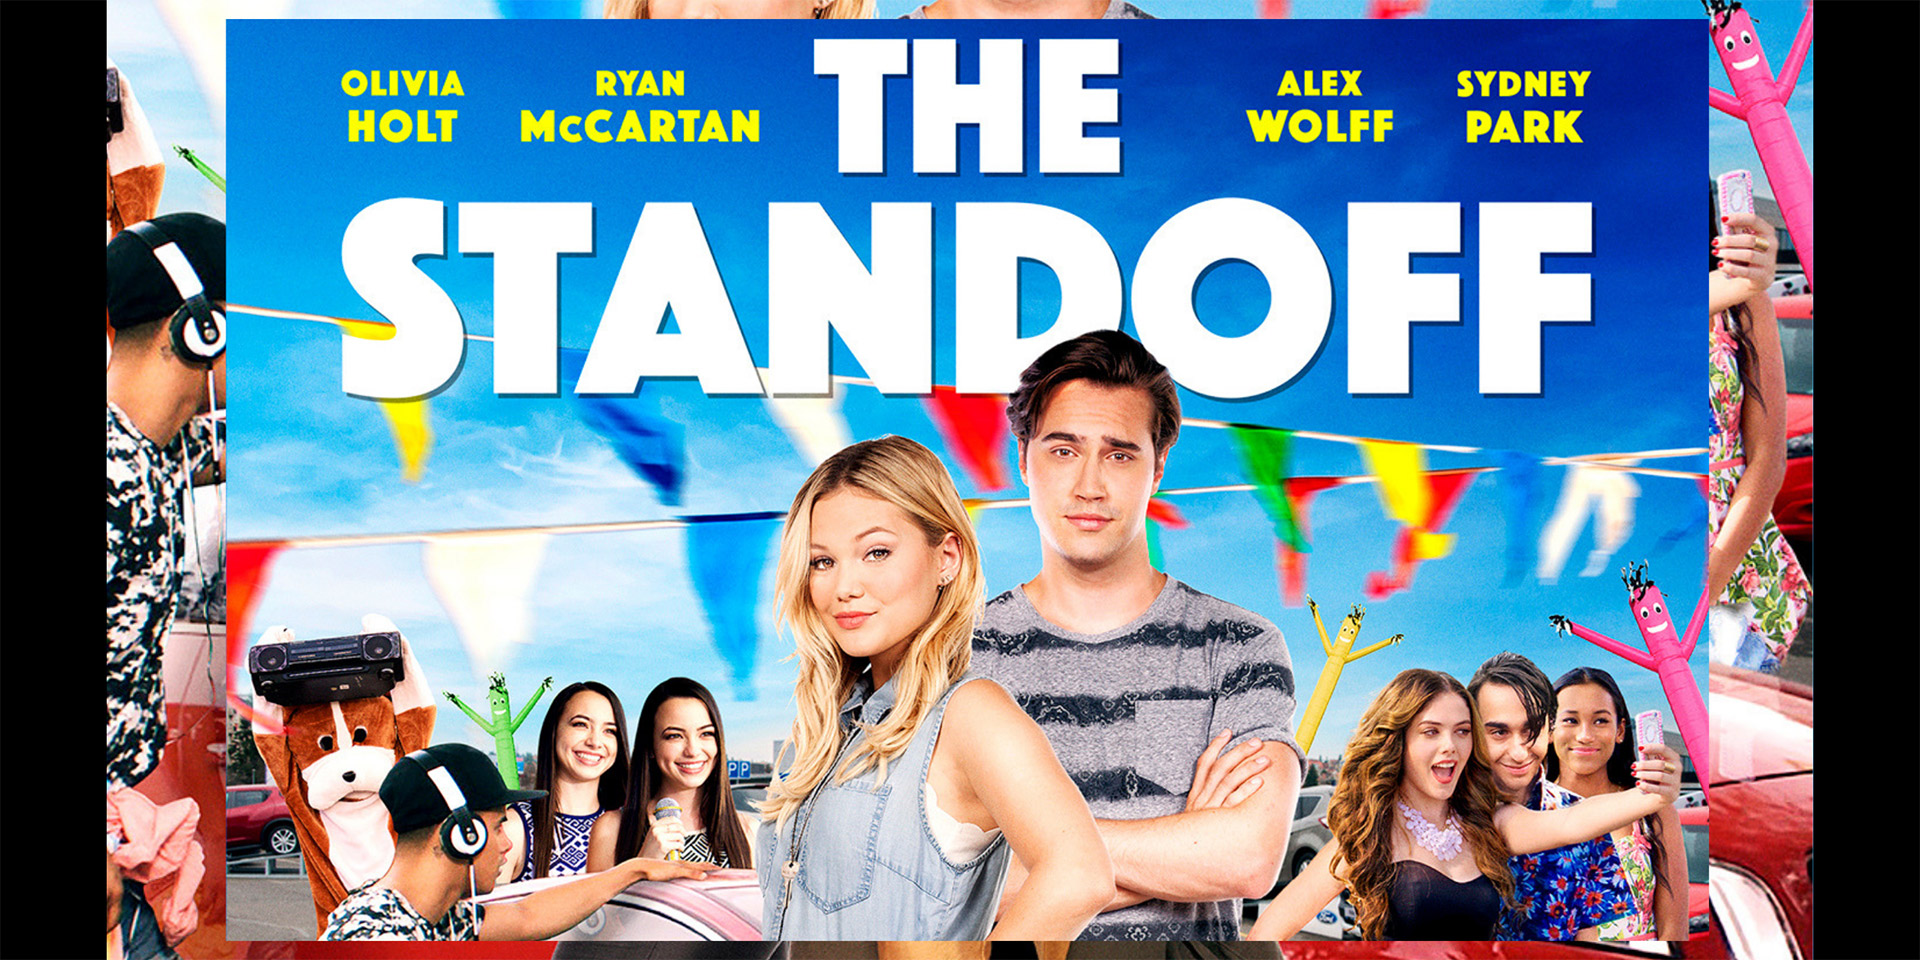 The Standoff poster